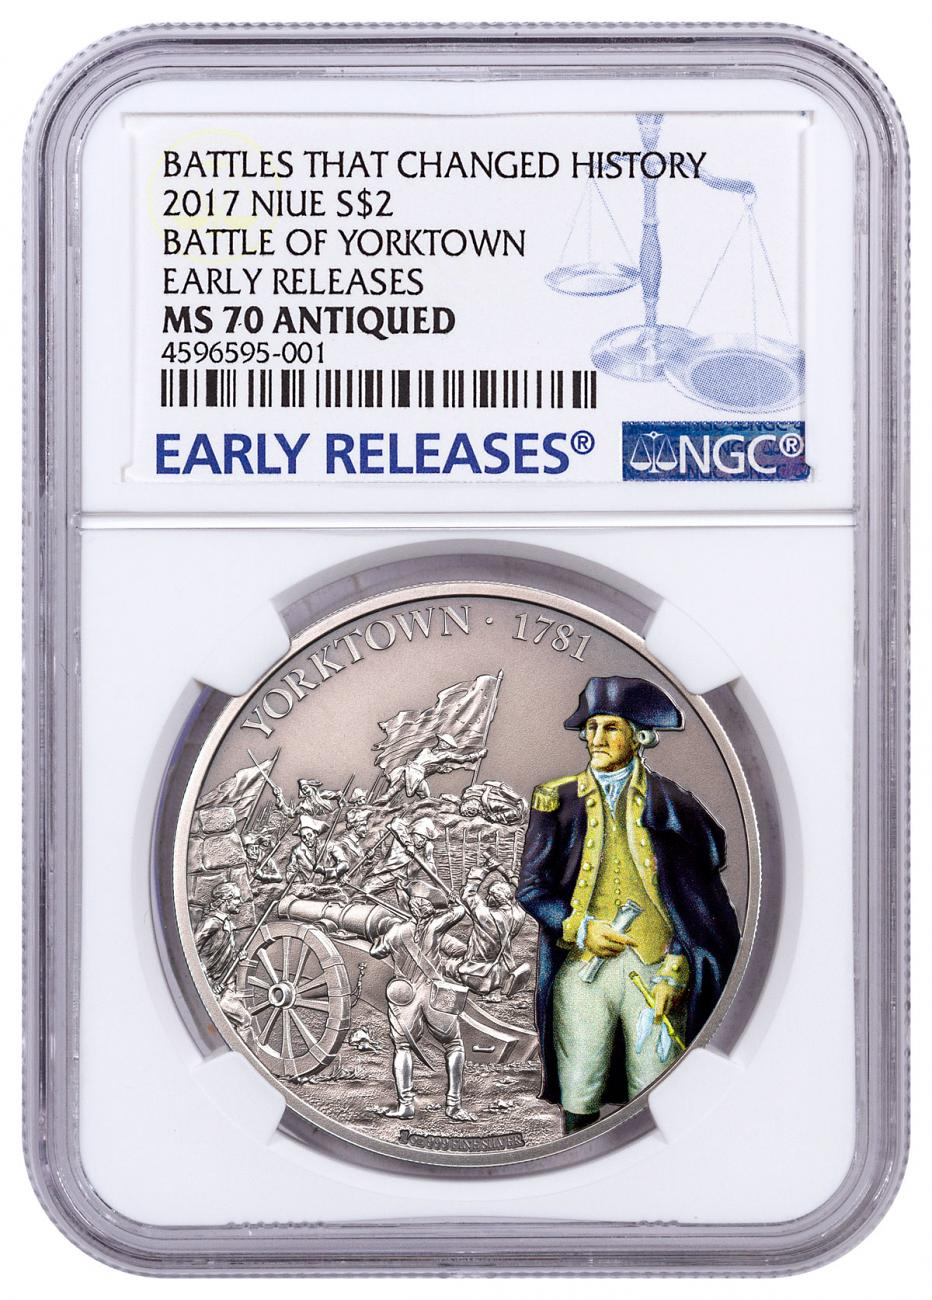 2017 Niue Battles That Changed History - Battle of Yorktown 1 oz Silver Antiqued $2 Coin NGC MS70 ER